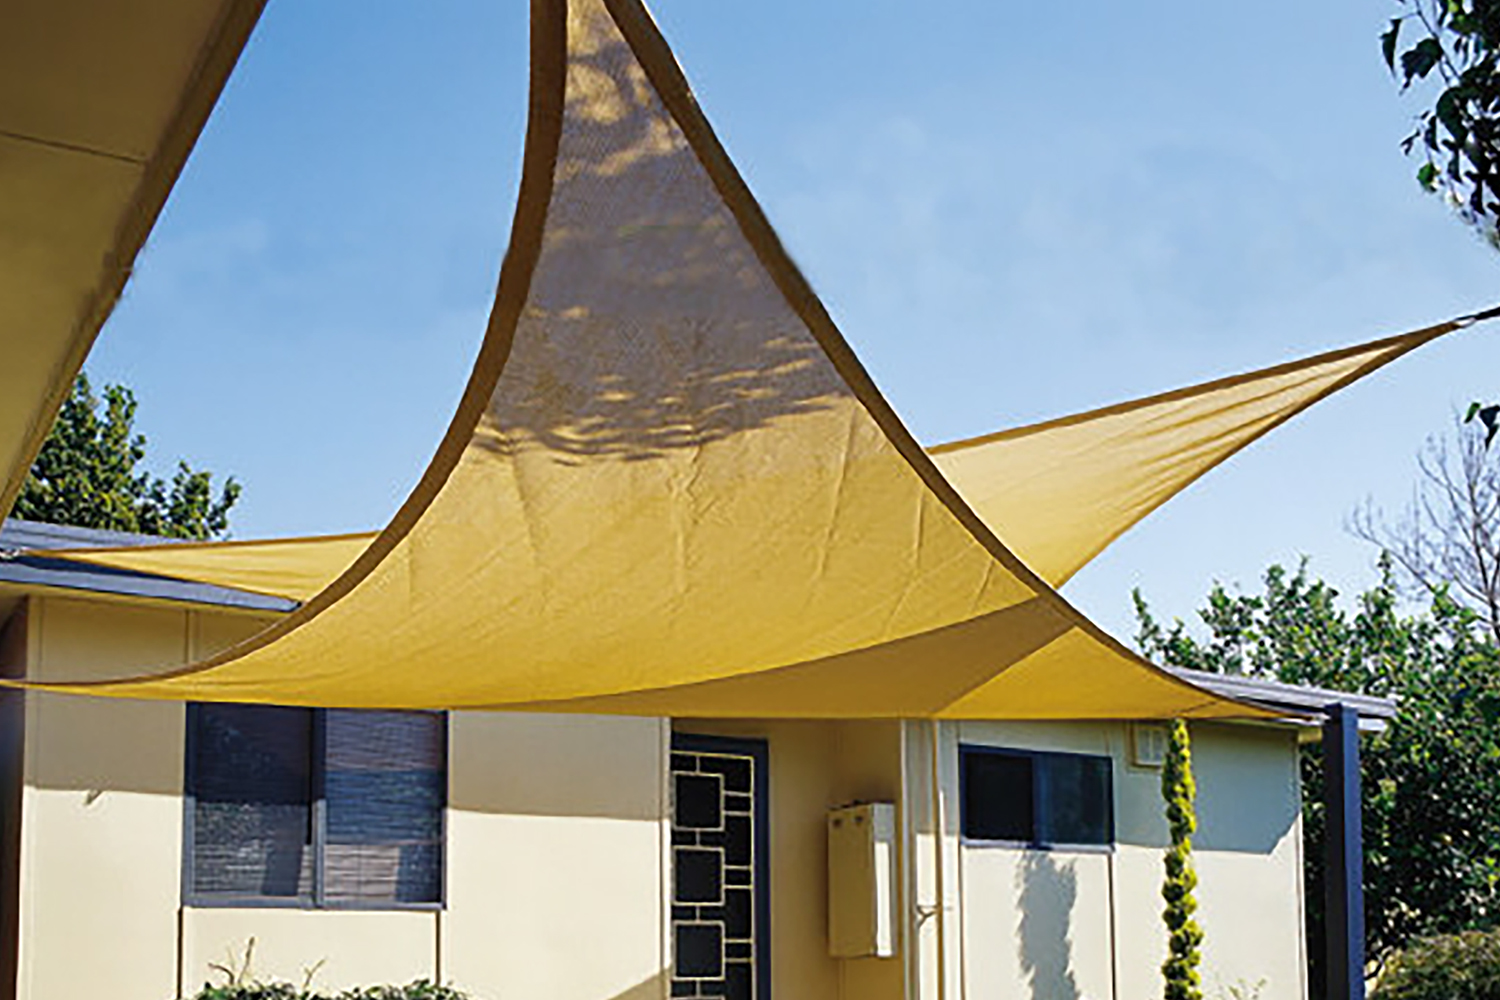 maribelle triangle sun sail shade garden patio canopy with ropes fittings ebay. Black Bedroom Furniture Sets. Home Design Ideas